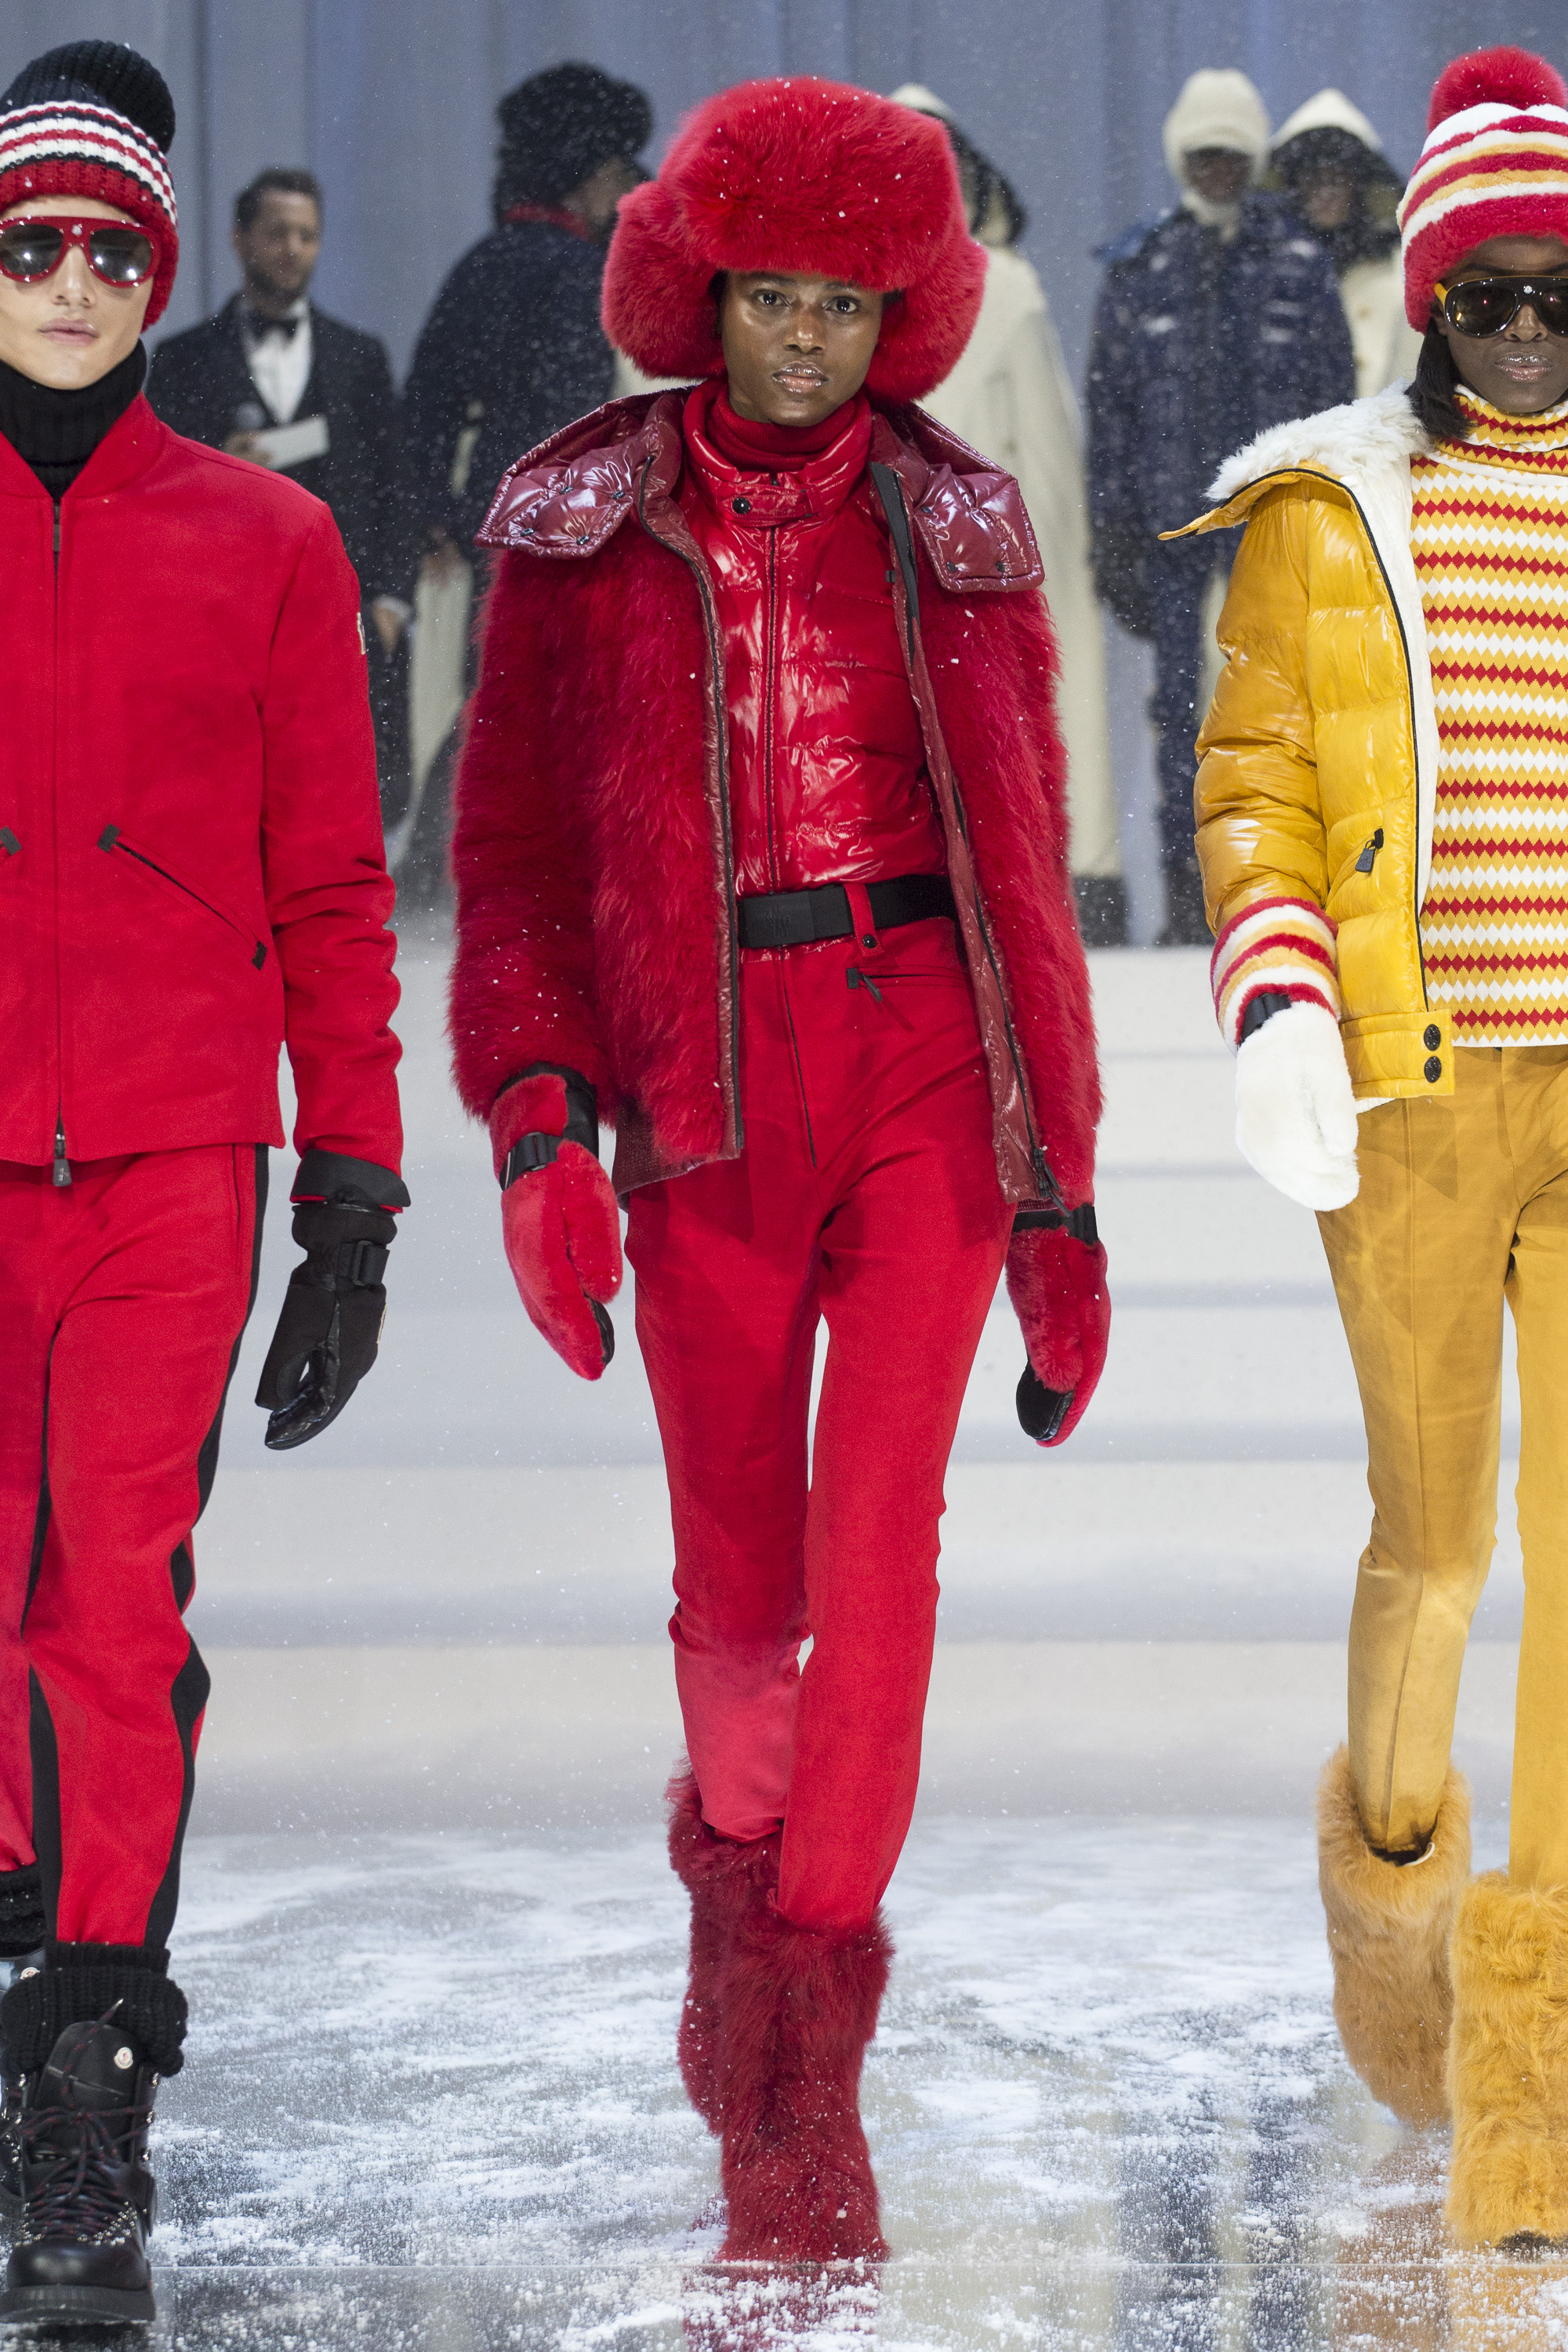 MONCLER GRENOBLE FALL WINTER 2017/18 COLLECTION IN NEW YORK